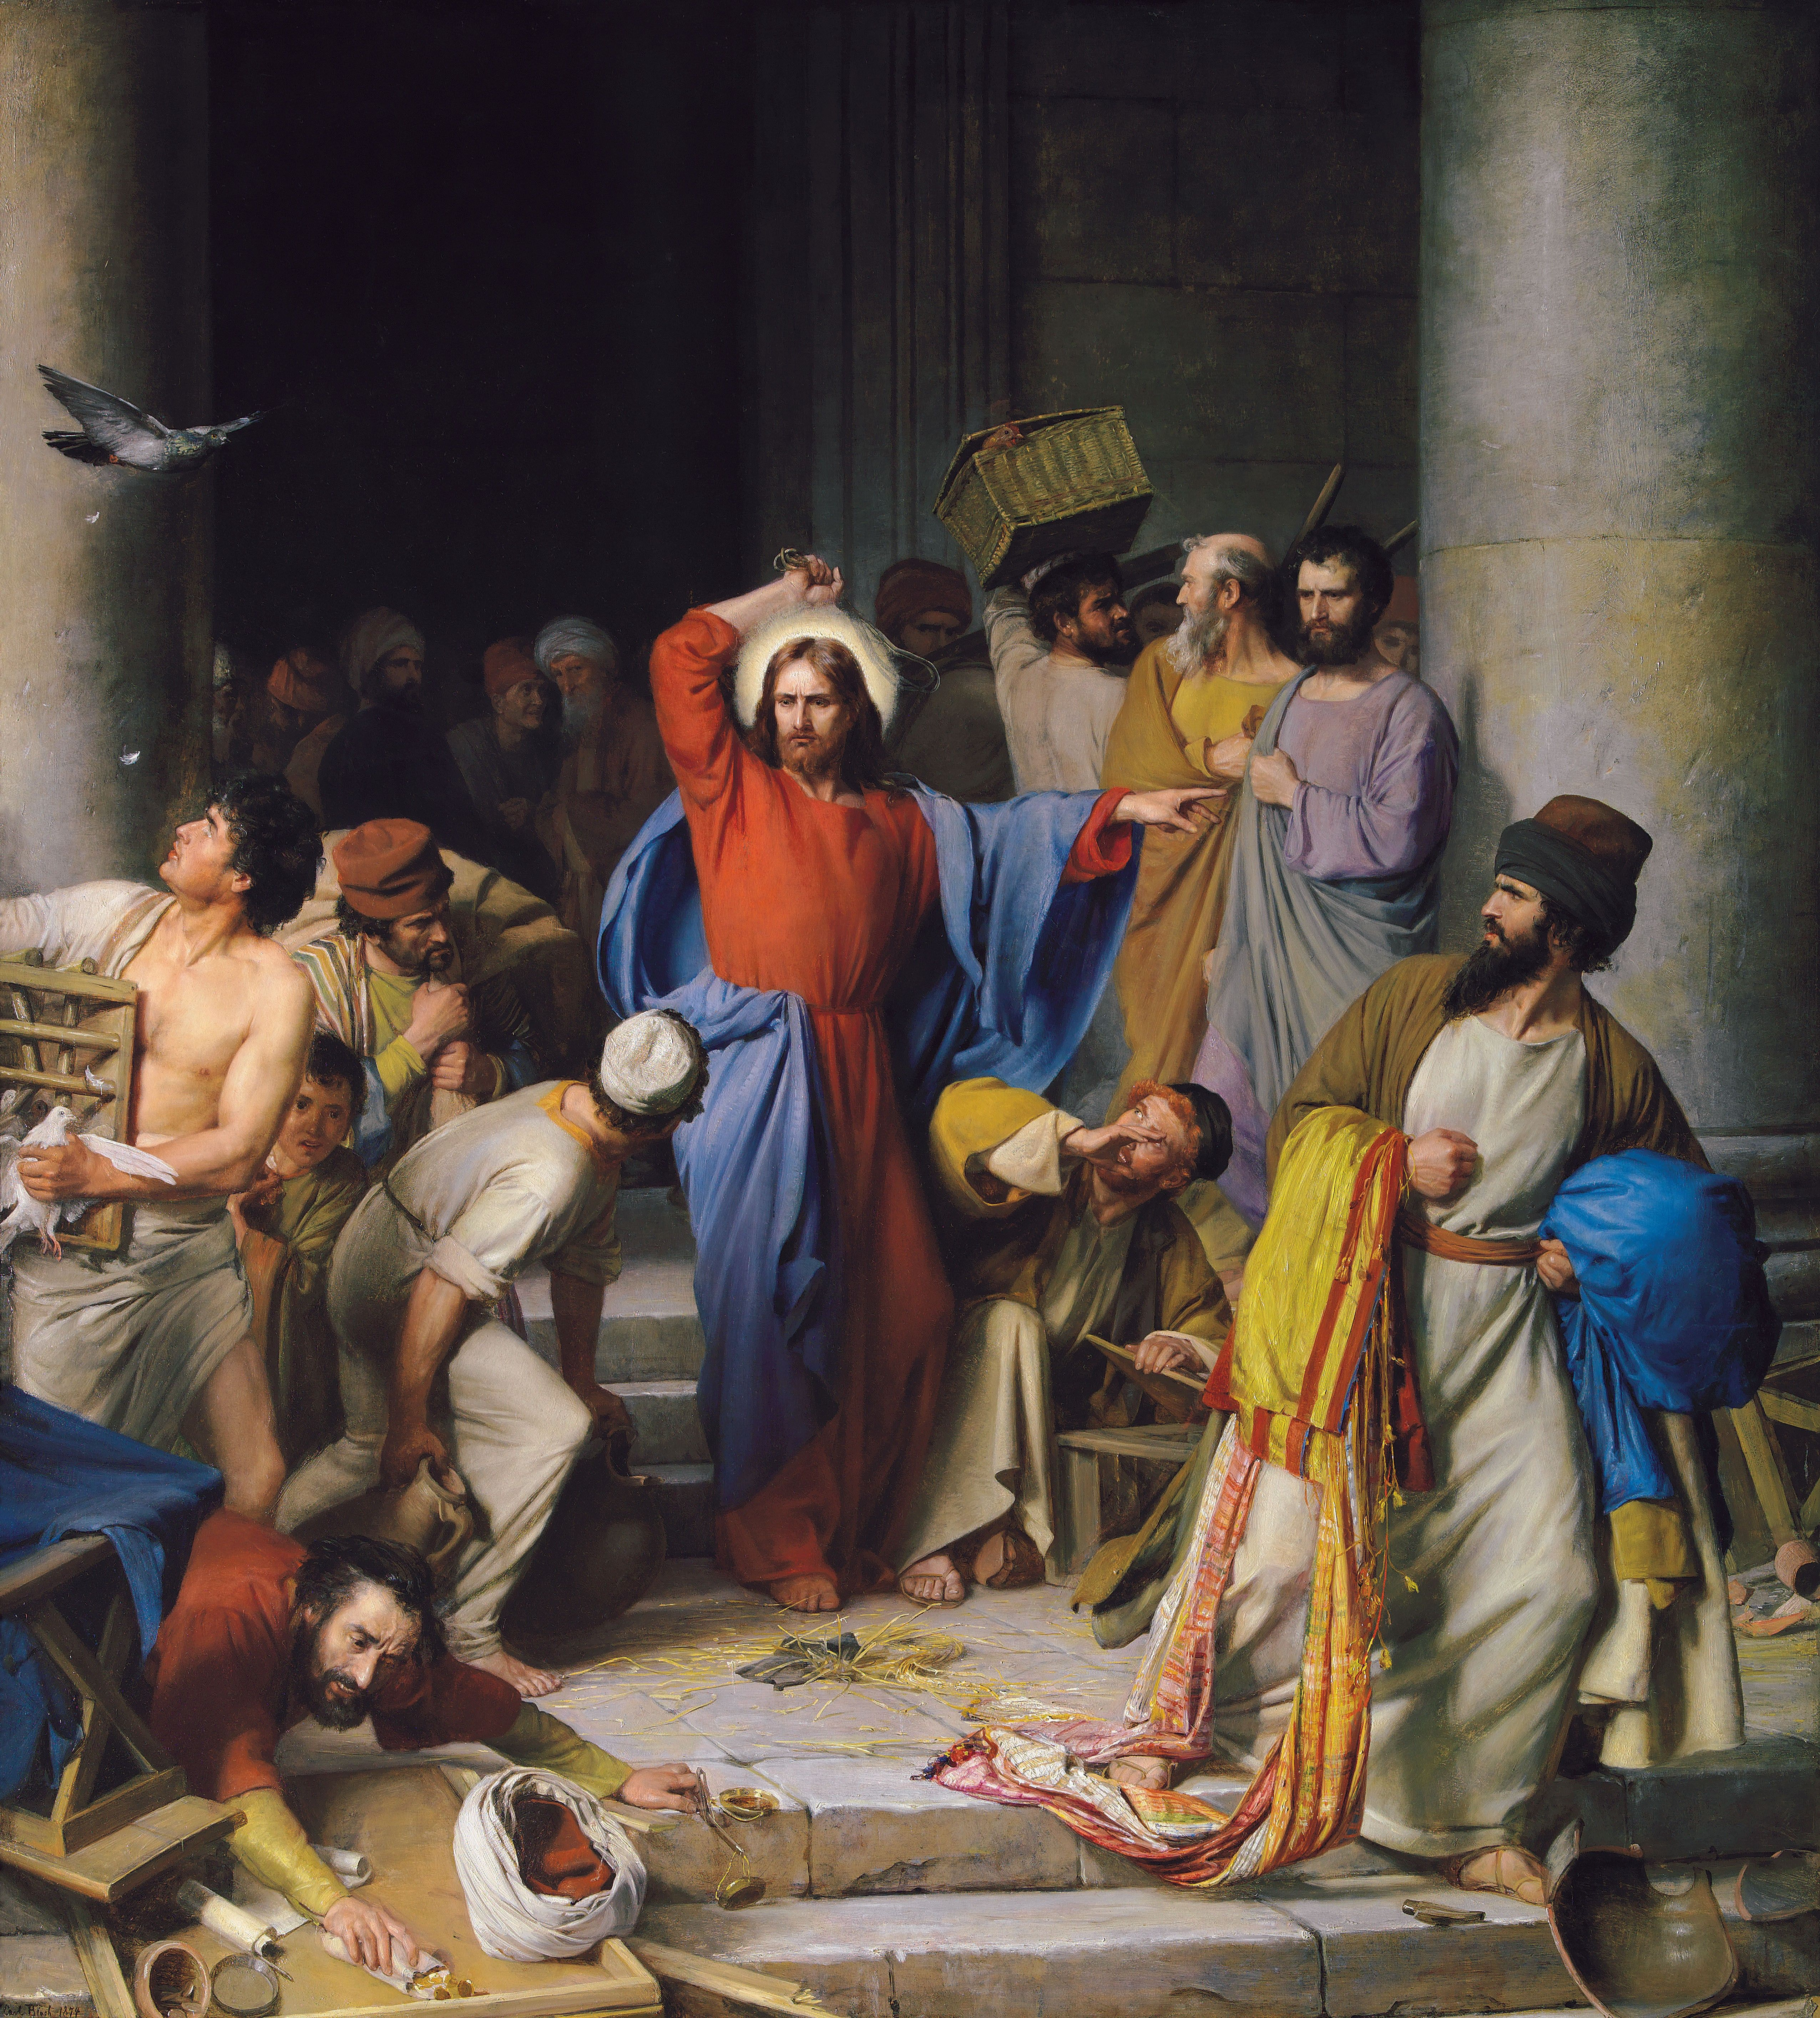 Jesus Cleansing the Temple, by Carl Heinrich Bloch (62163); GAK 224; GAB 51; Primary manual 7-09; Matthew 21:12–15; Mark 11:15–17; Luke 19:45–46; John 2:13–16